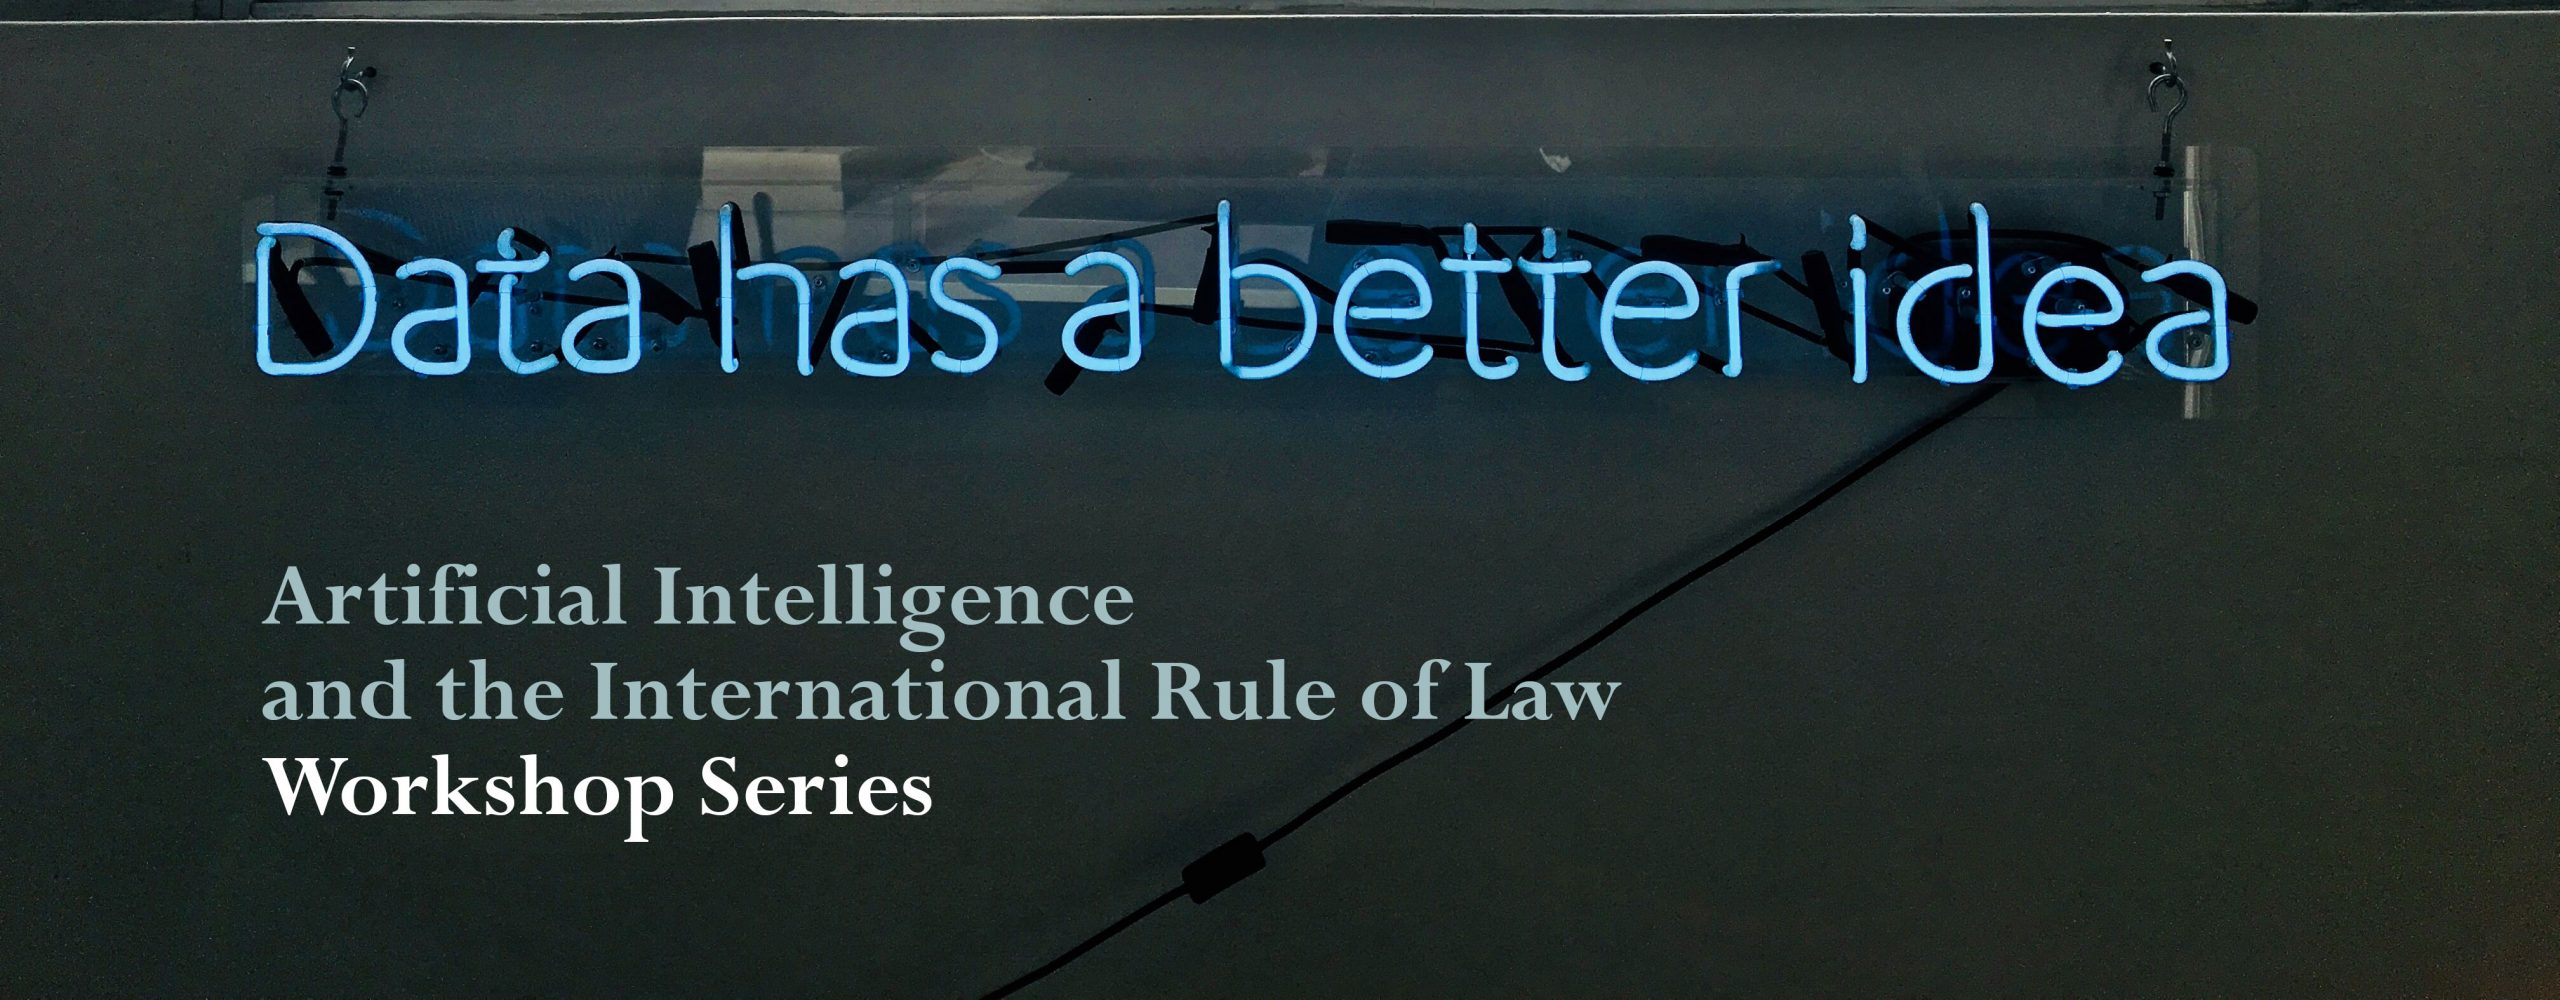 Artificial Intelligence and the International Rule of Law Workshop Series